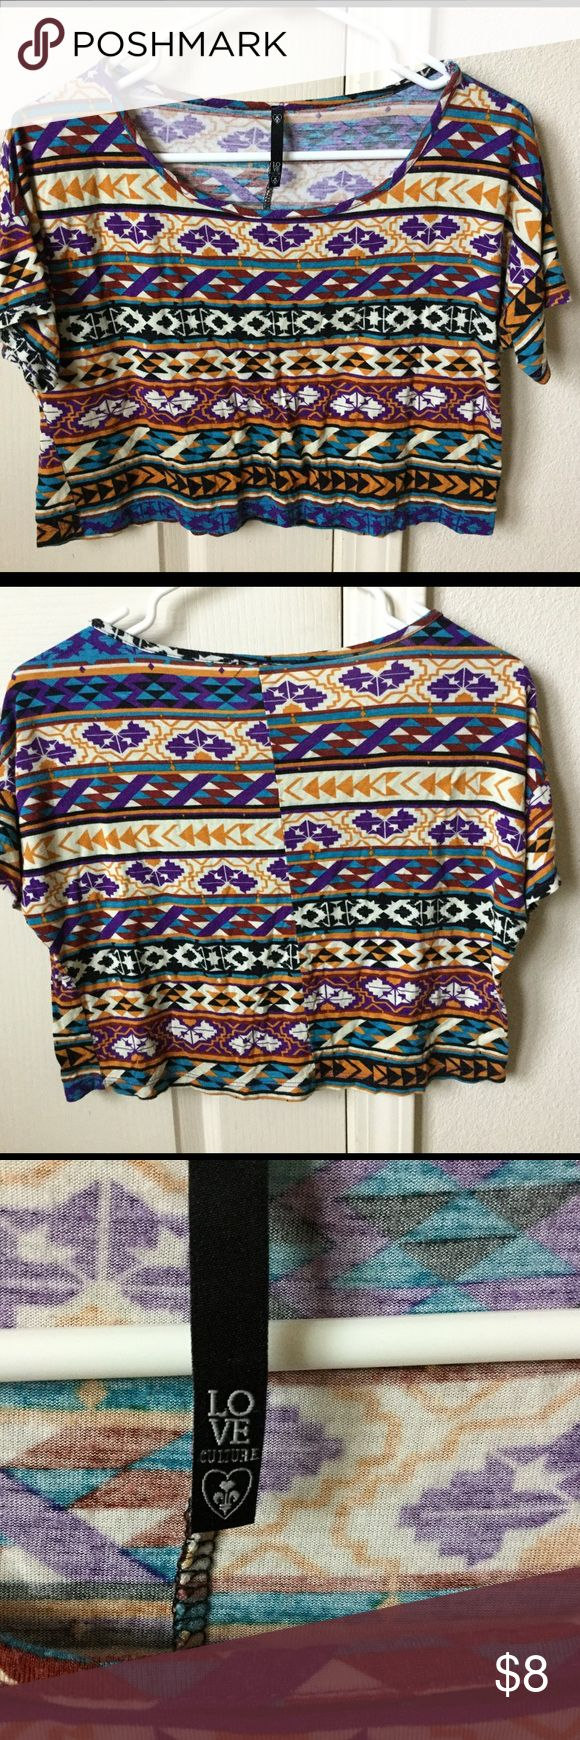 Love Culture Aztec Crop Top, Sz Med Love Culture Aztec Crop Top, Sz Med, No size tag on, non-smoking home, NO HOLDS, no visible stains or holes, Love Culture Tops Crop Tops